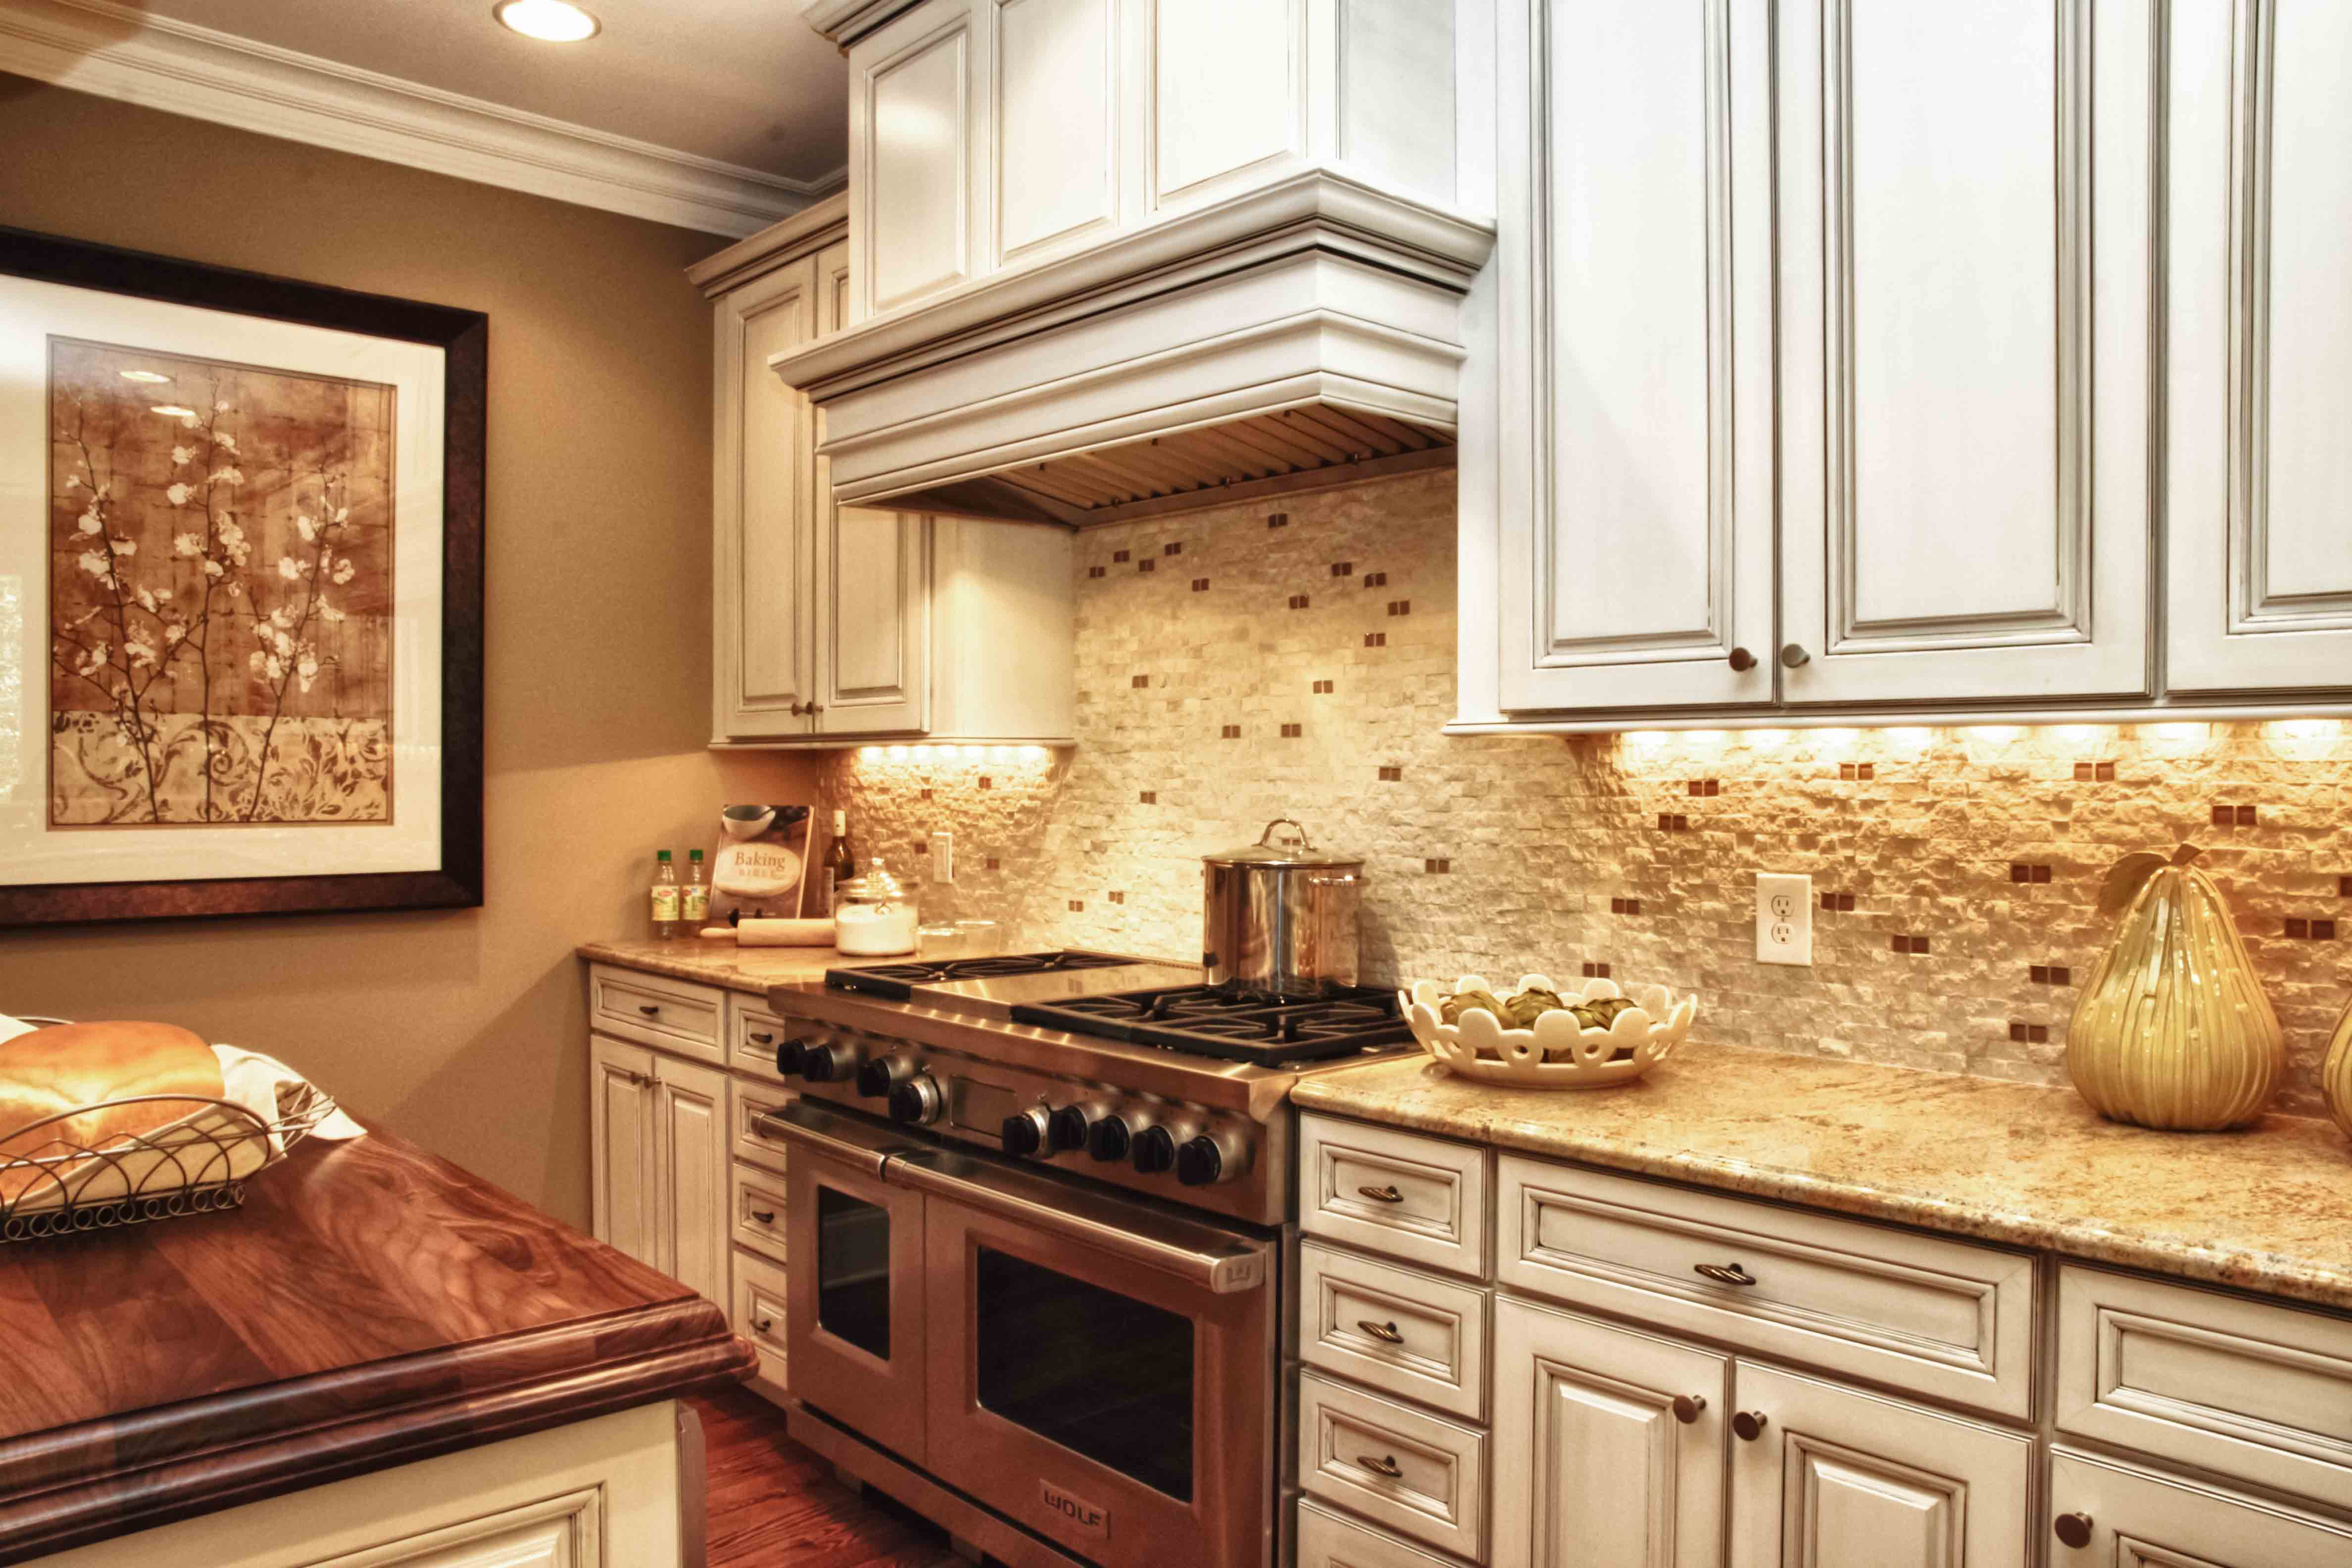 TILING AND COUNTERTOPS. »